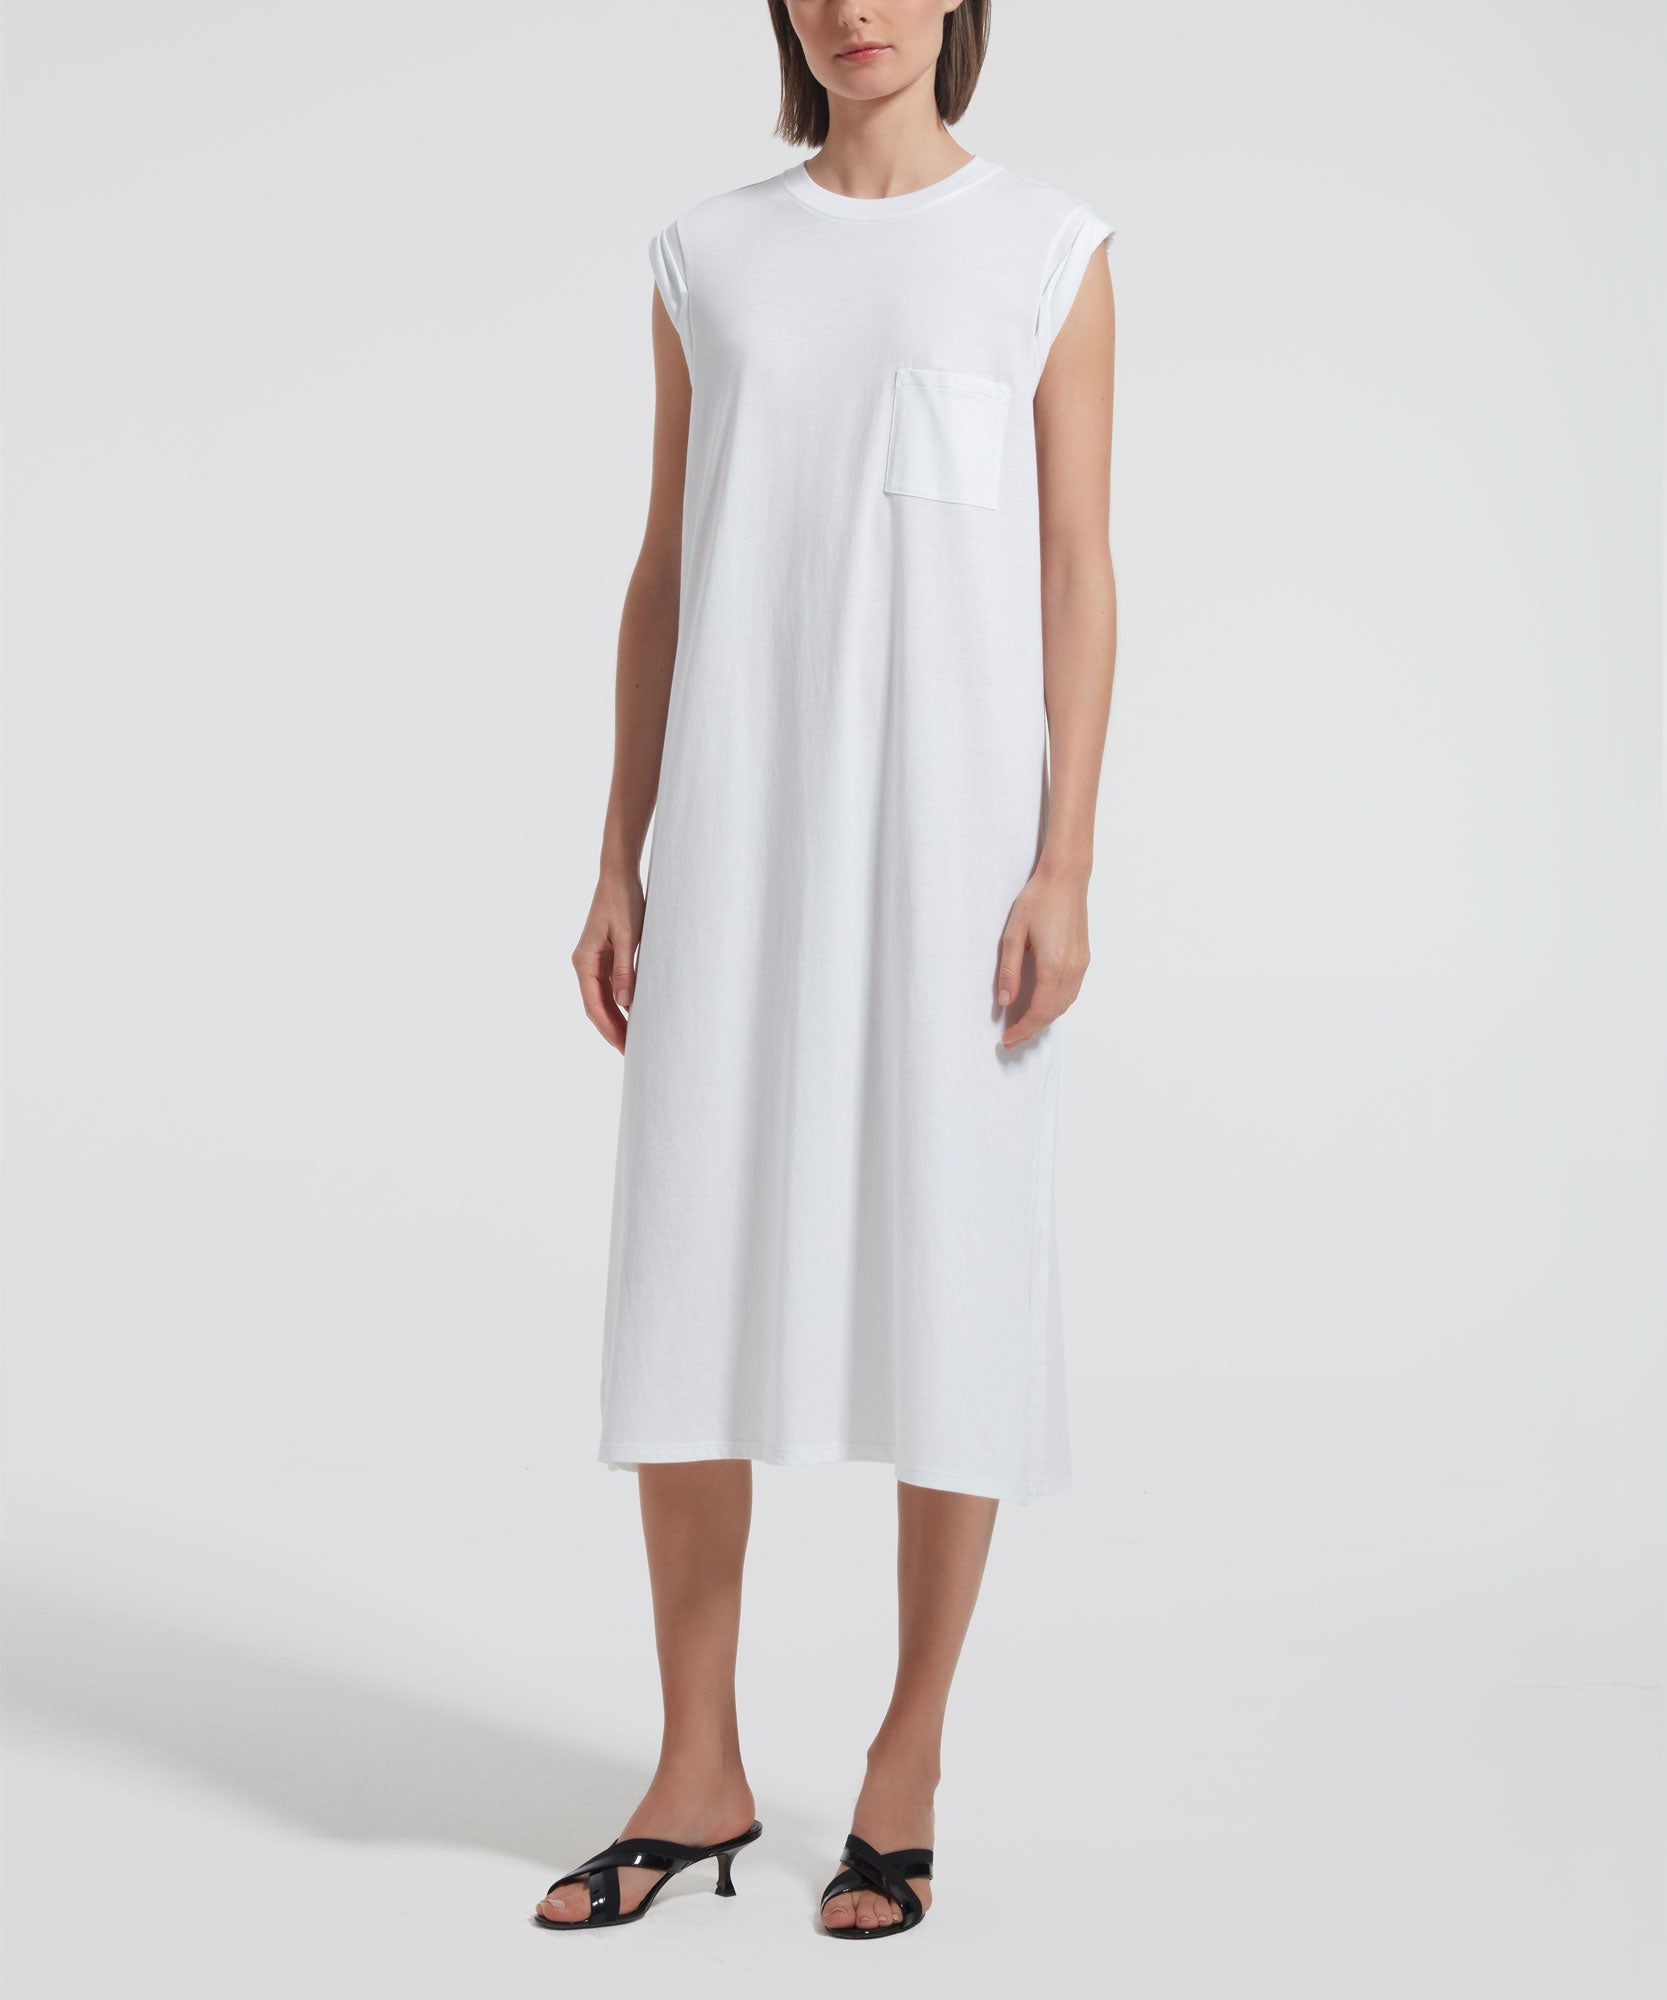 White High Torsion Rolled Cuff Dress - Women's Sleeveless Dress by ATM Anthony Thomas Melillo